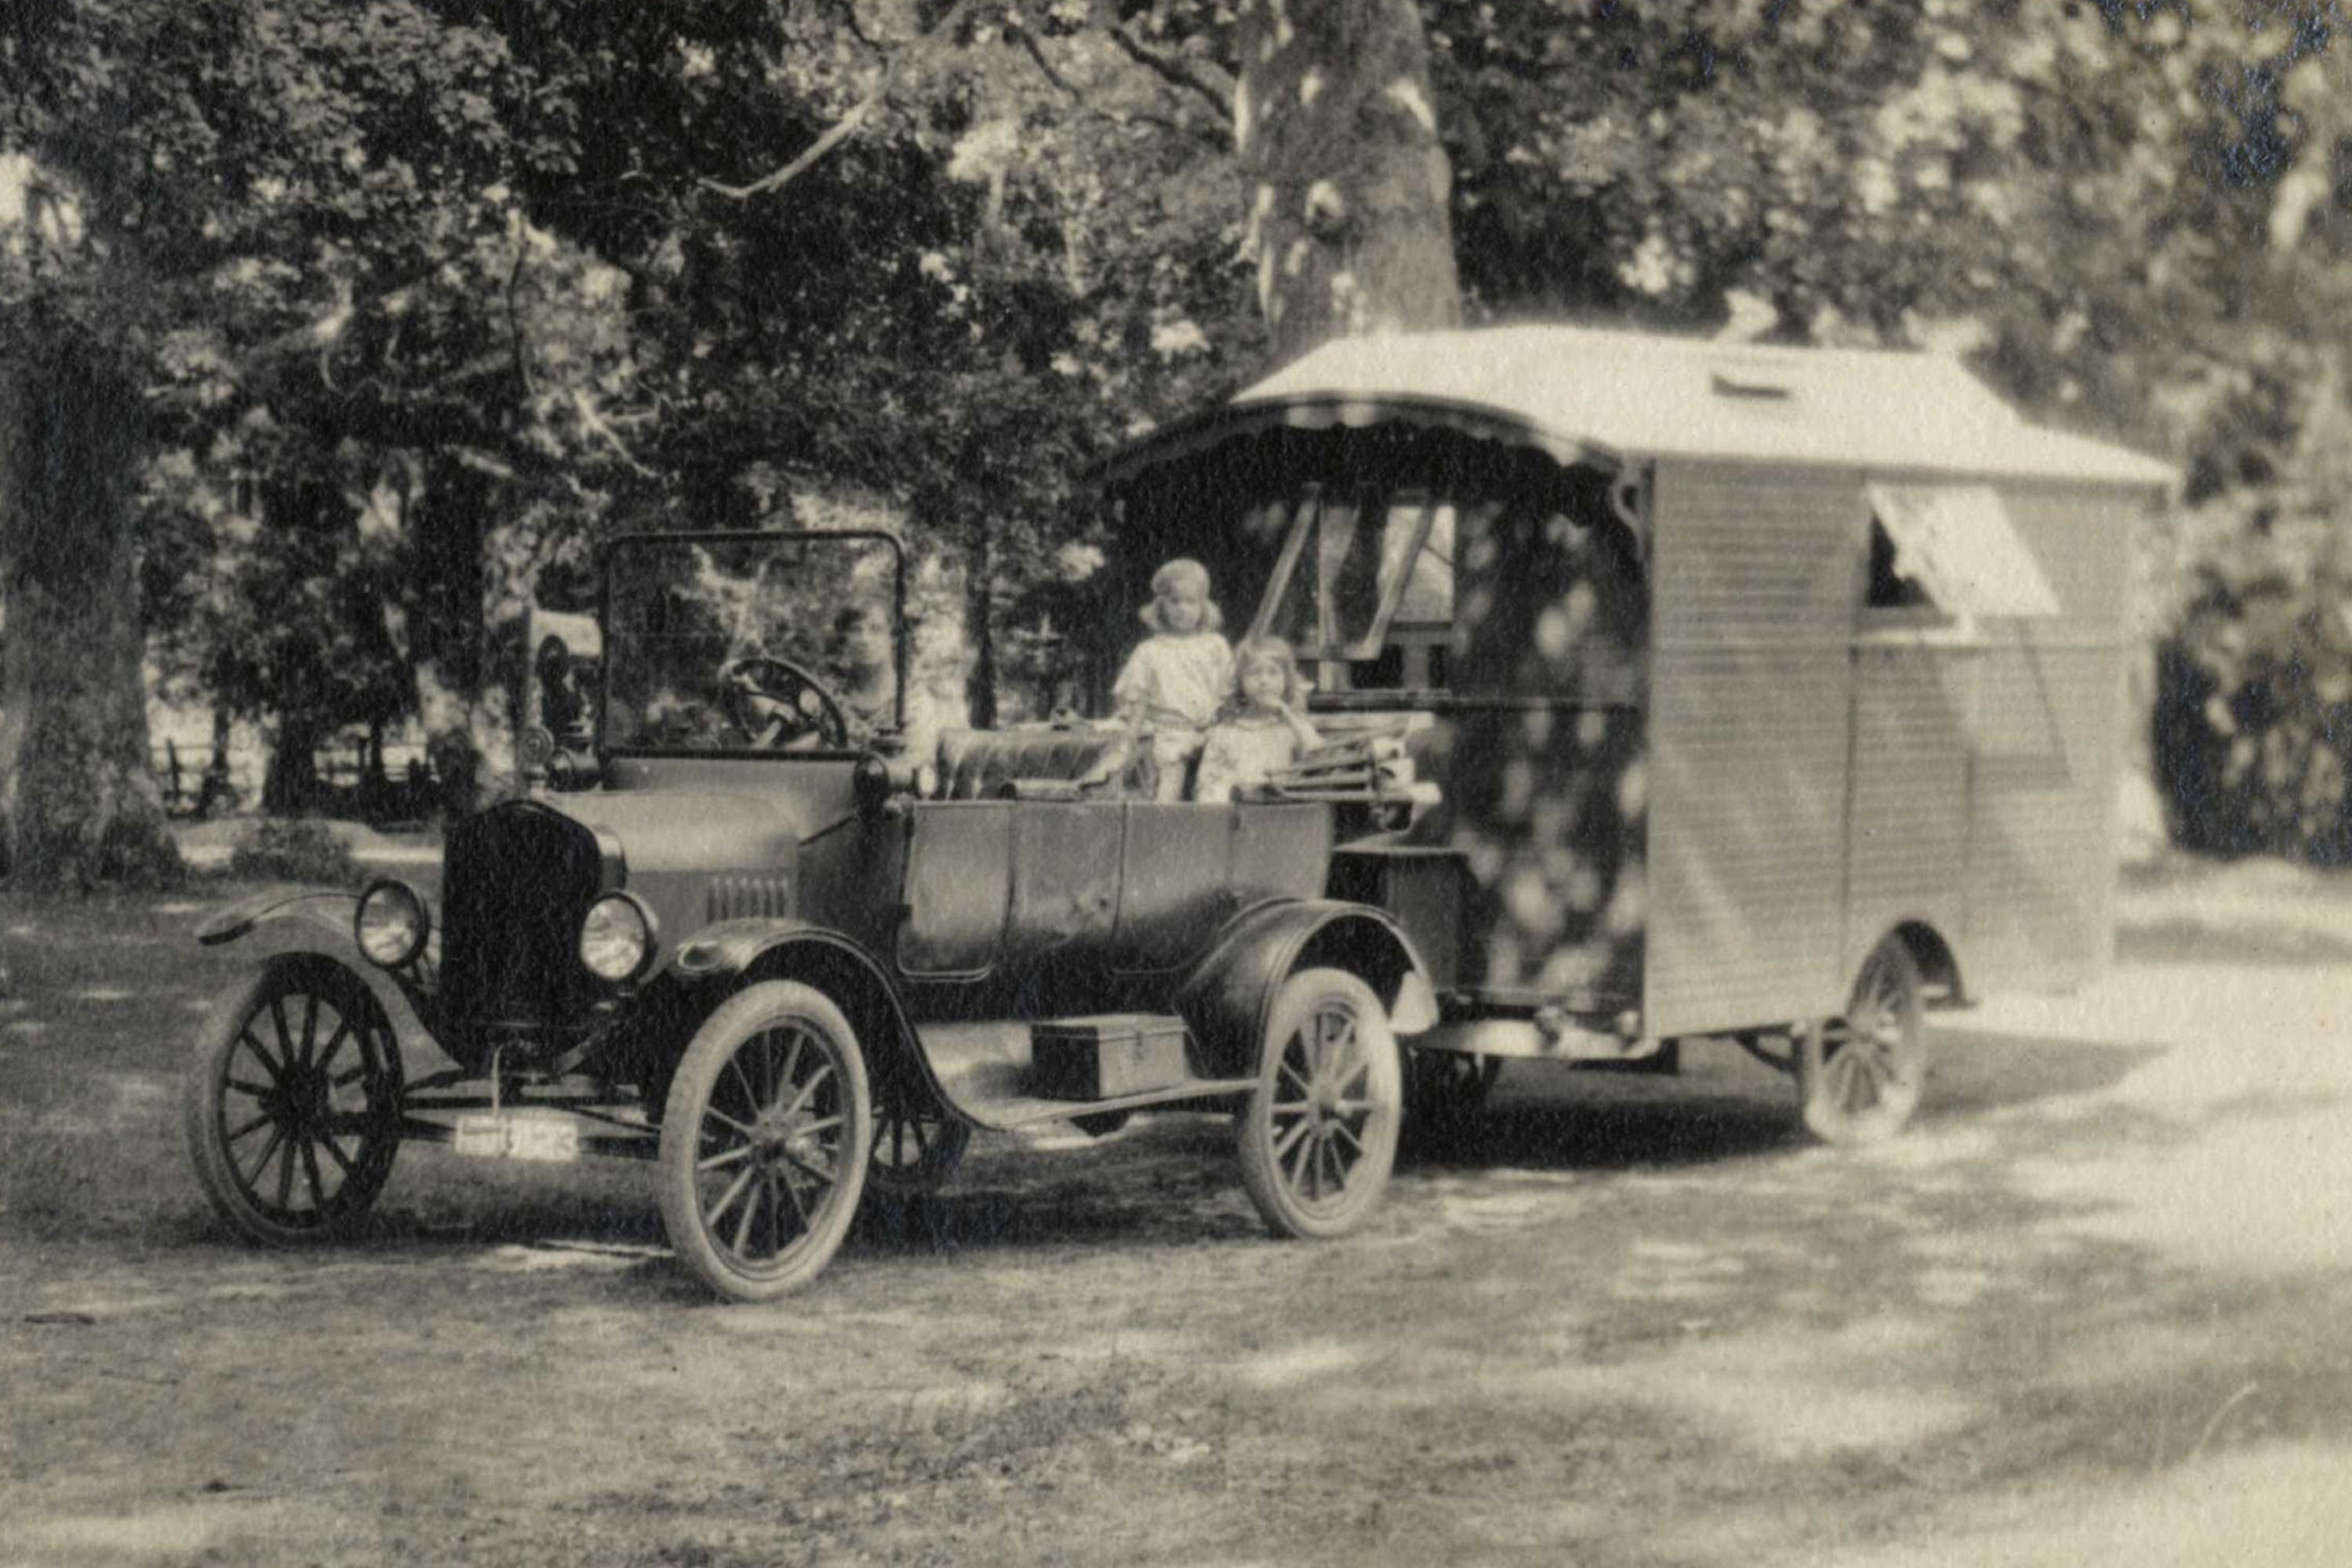 A 1920s car and caravan in a Forest clearing with children seated in the car.